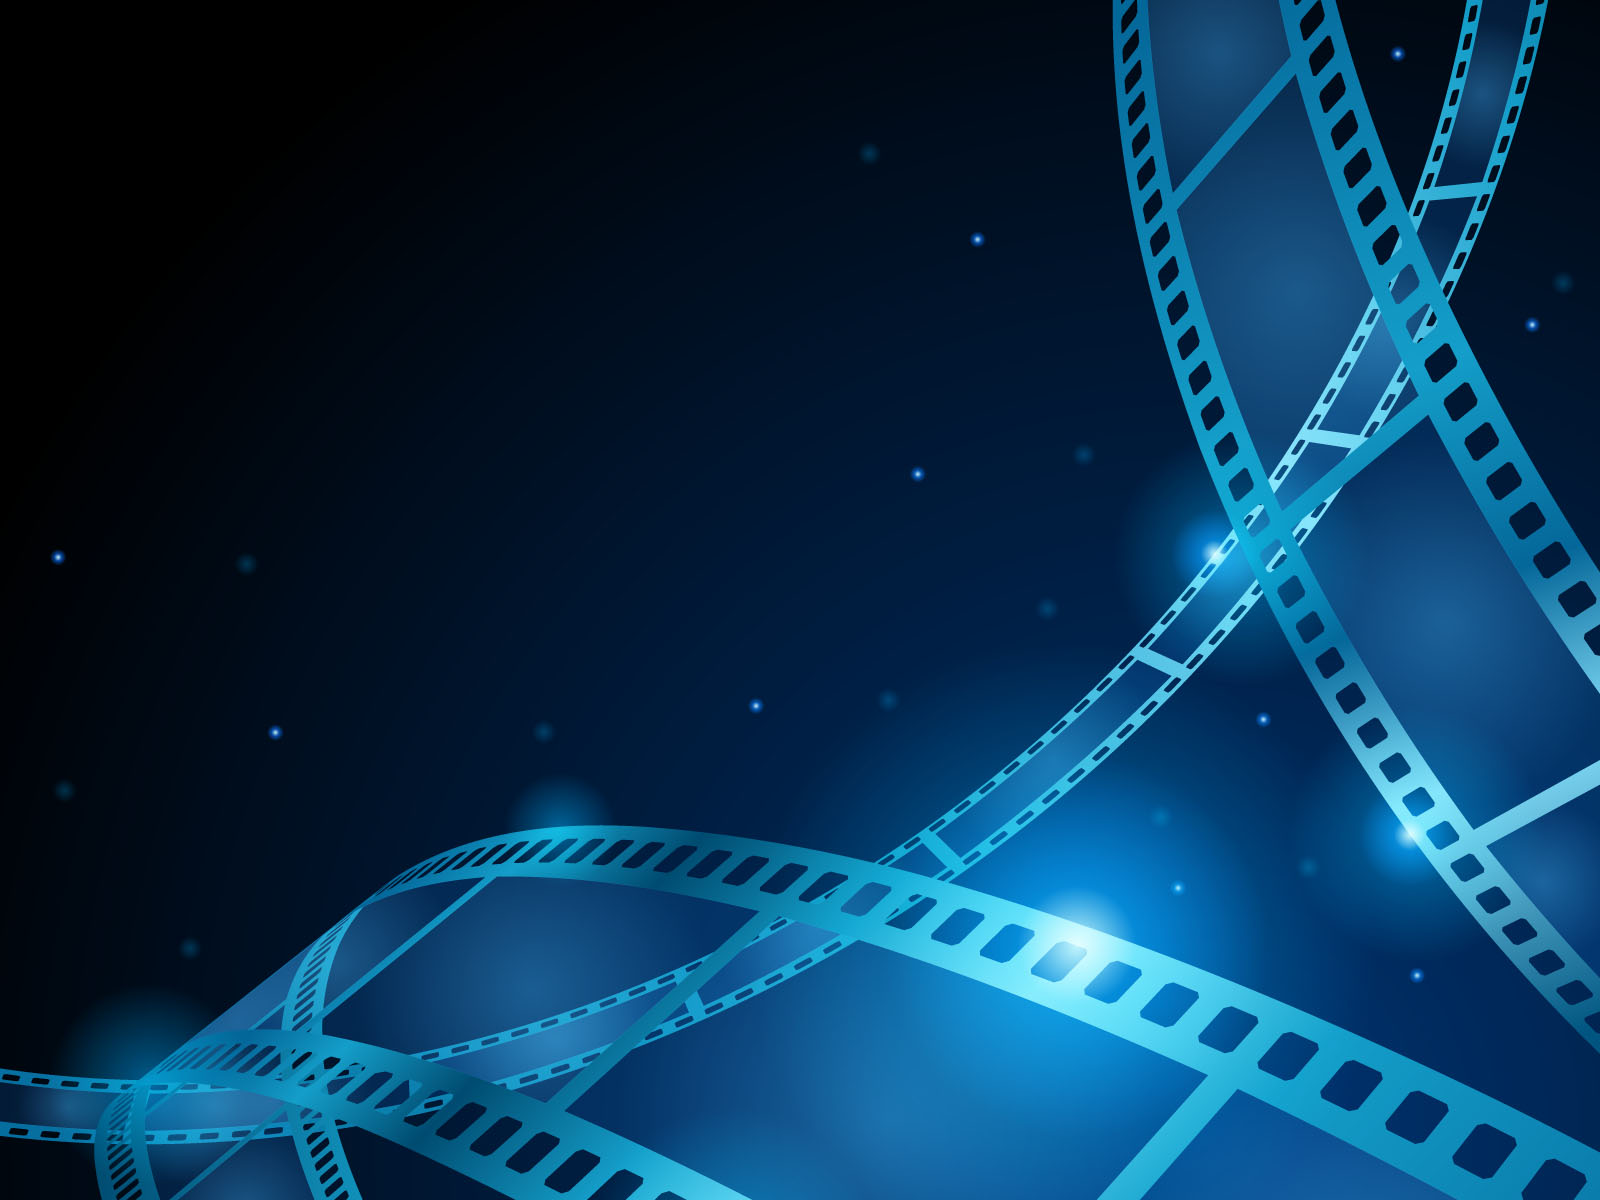 movie PPT Backgrounds   Powerpoint Backgrounds 1600x1200